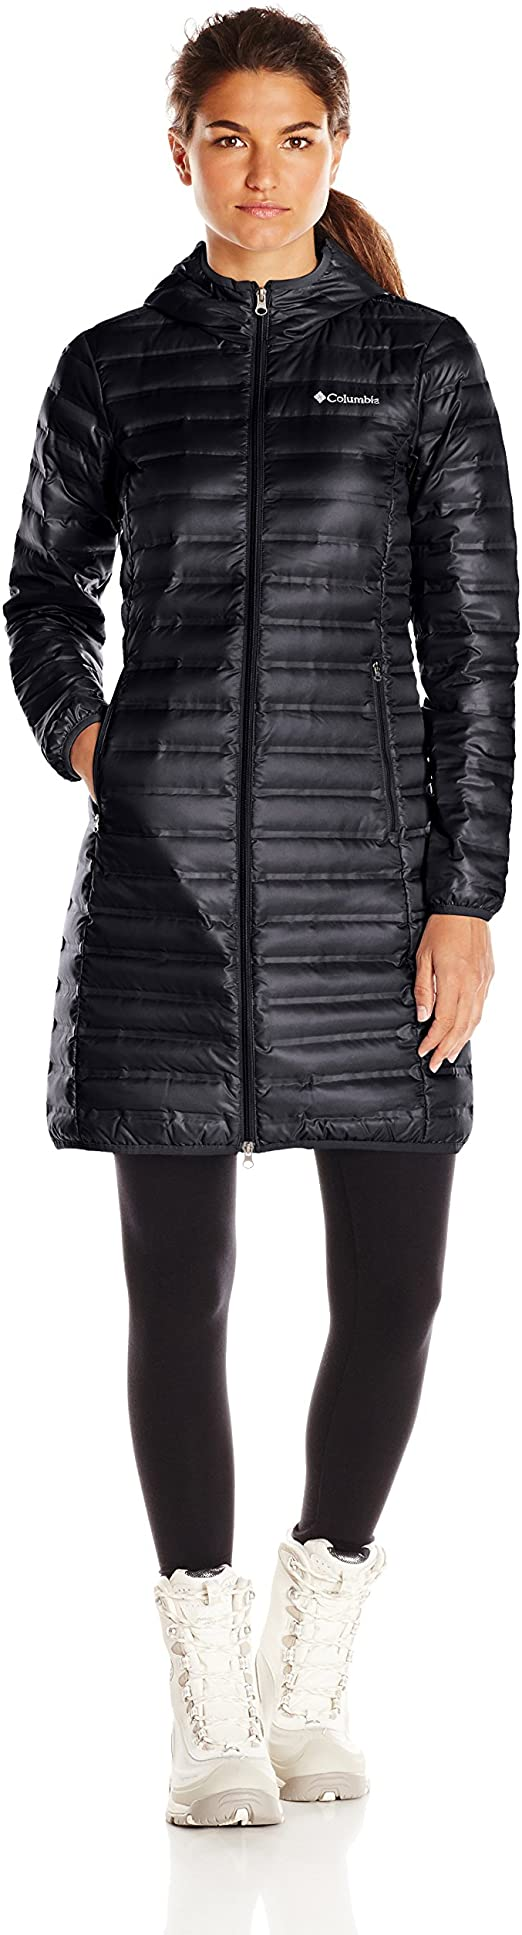 Columbia Women's Flash Forward Long Down Jacket